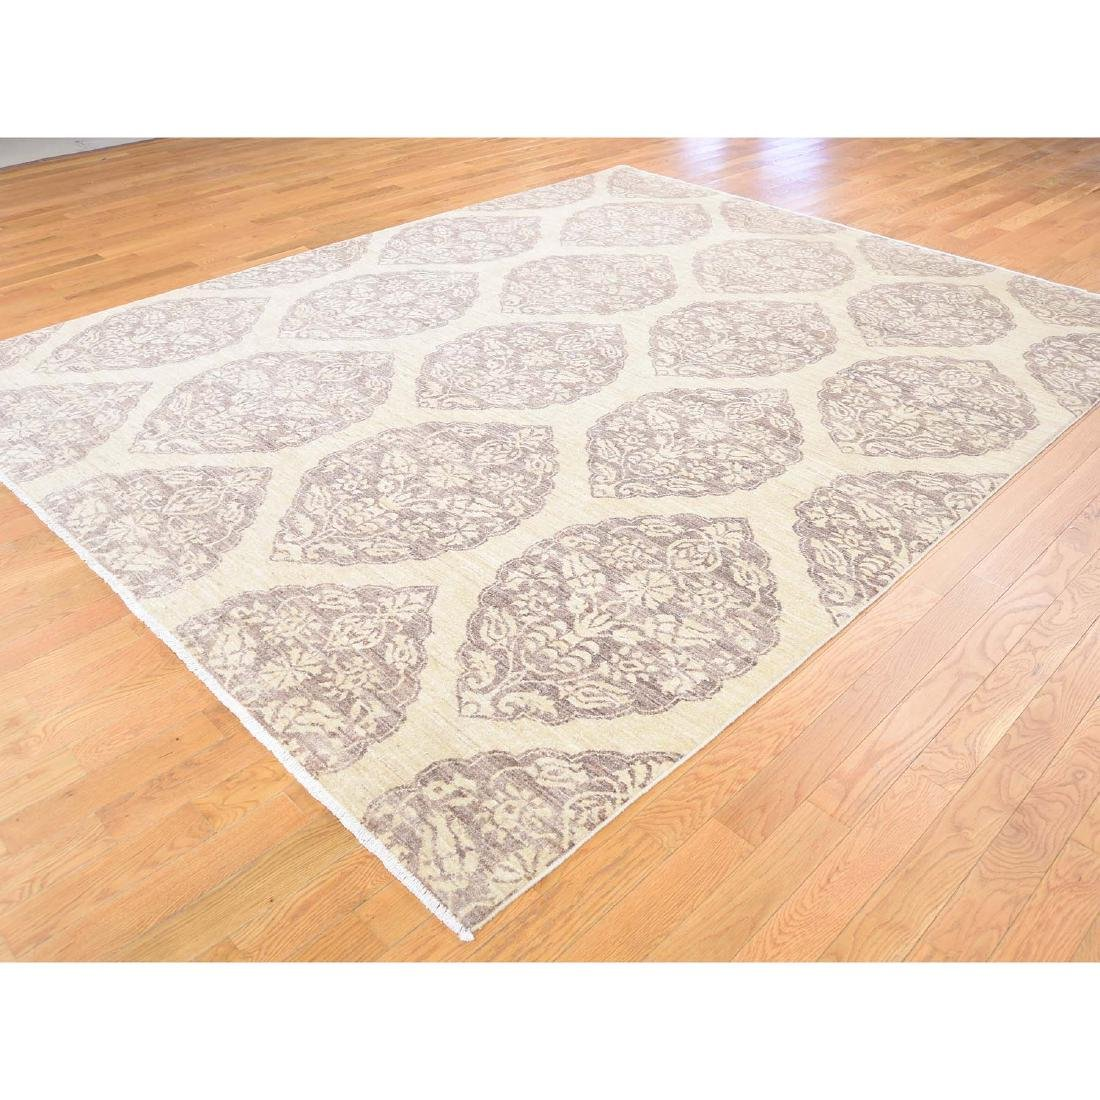 Pure Wool Peshawar with Mughal Design Hand Knotted Rug - 4